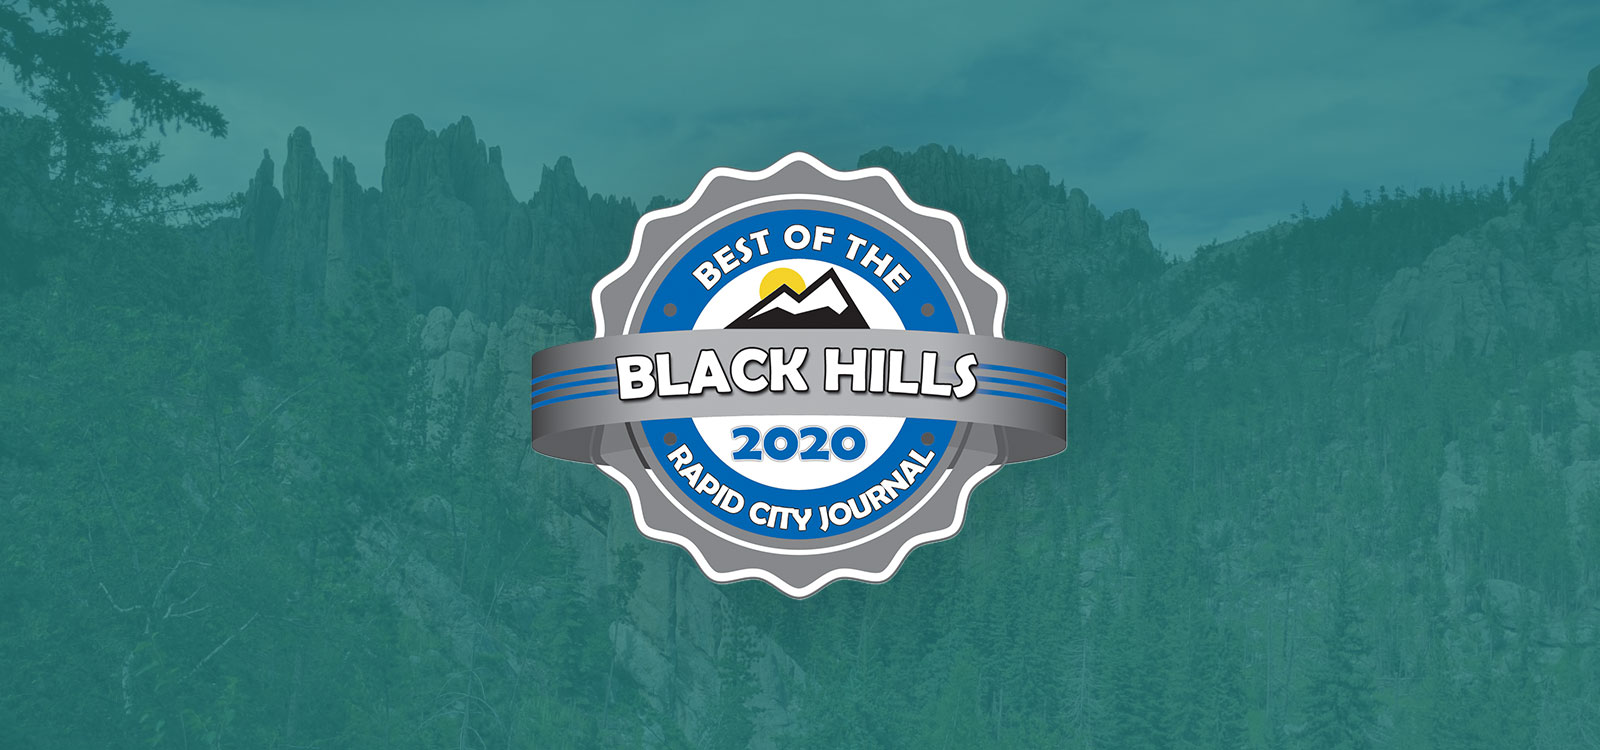 Affiliated Mortgage is the Winner of the Best Mortgage Lender in the Black Hills 2020